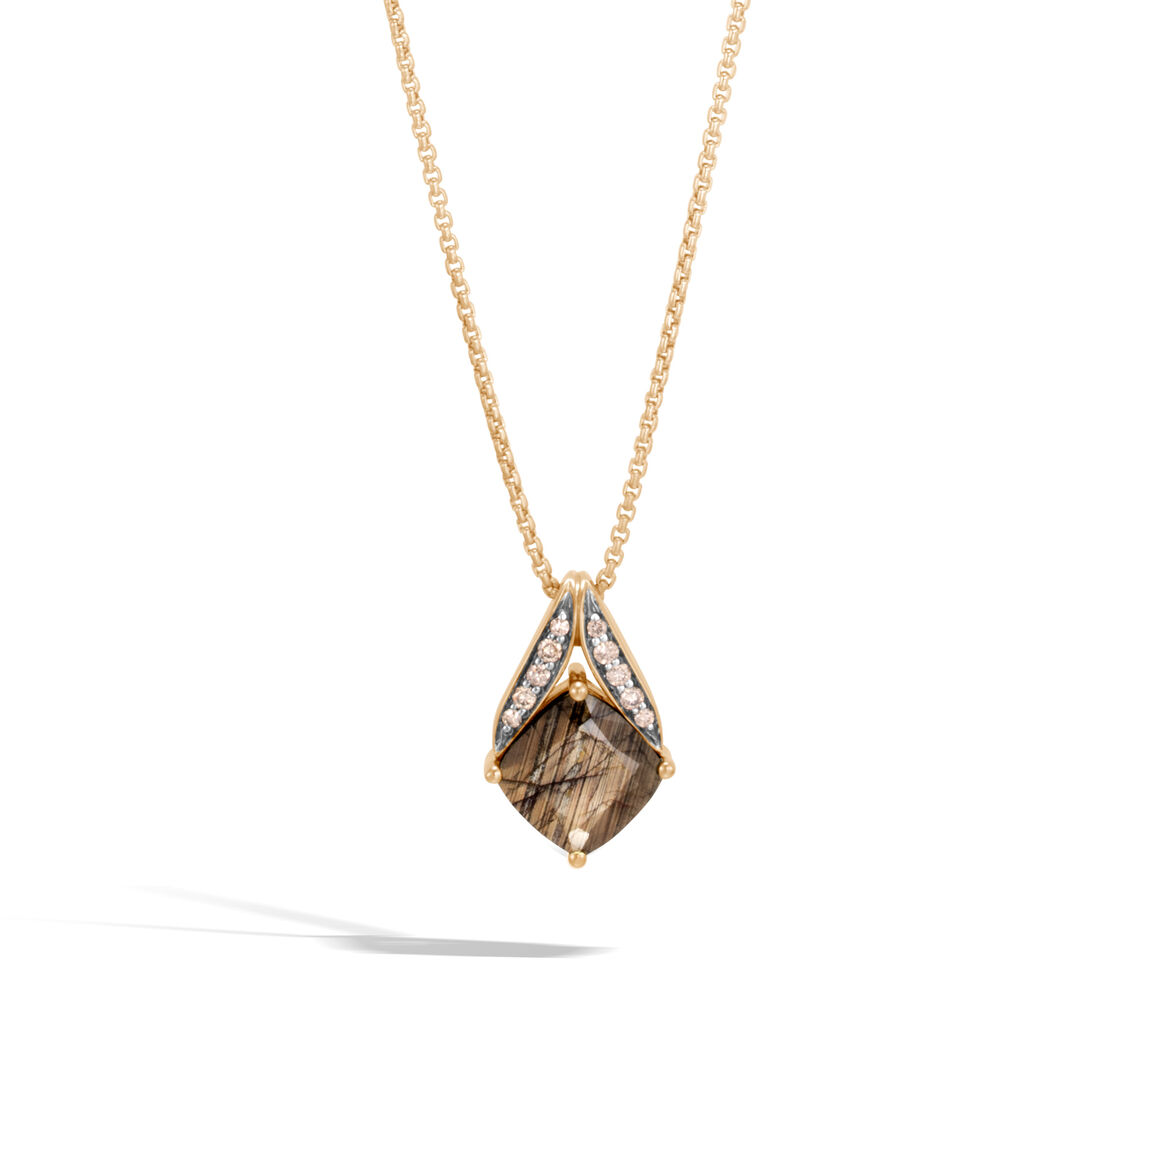 Modern Chain Magic Cut Pendant Necklace, 18K Gold, Gem, Dia